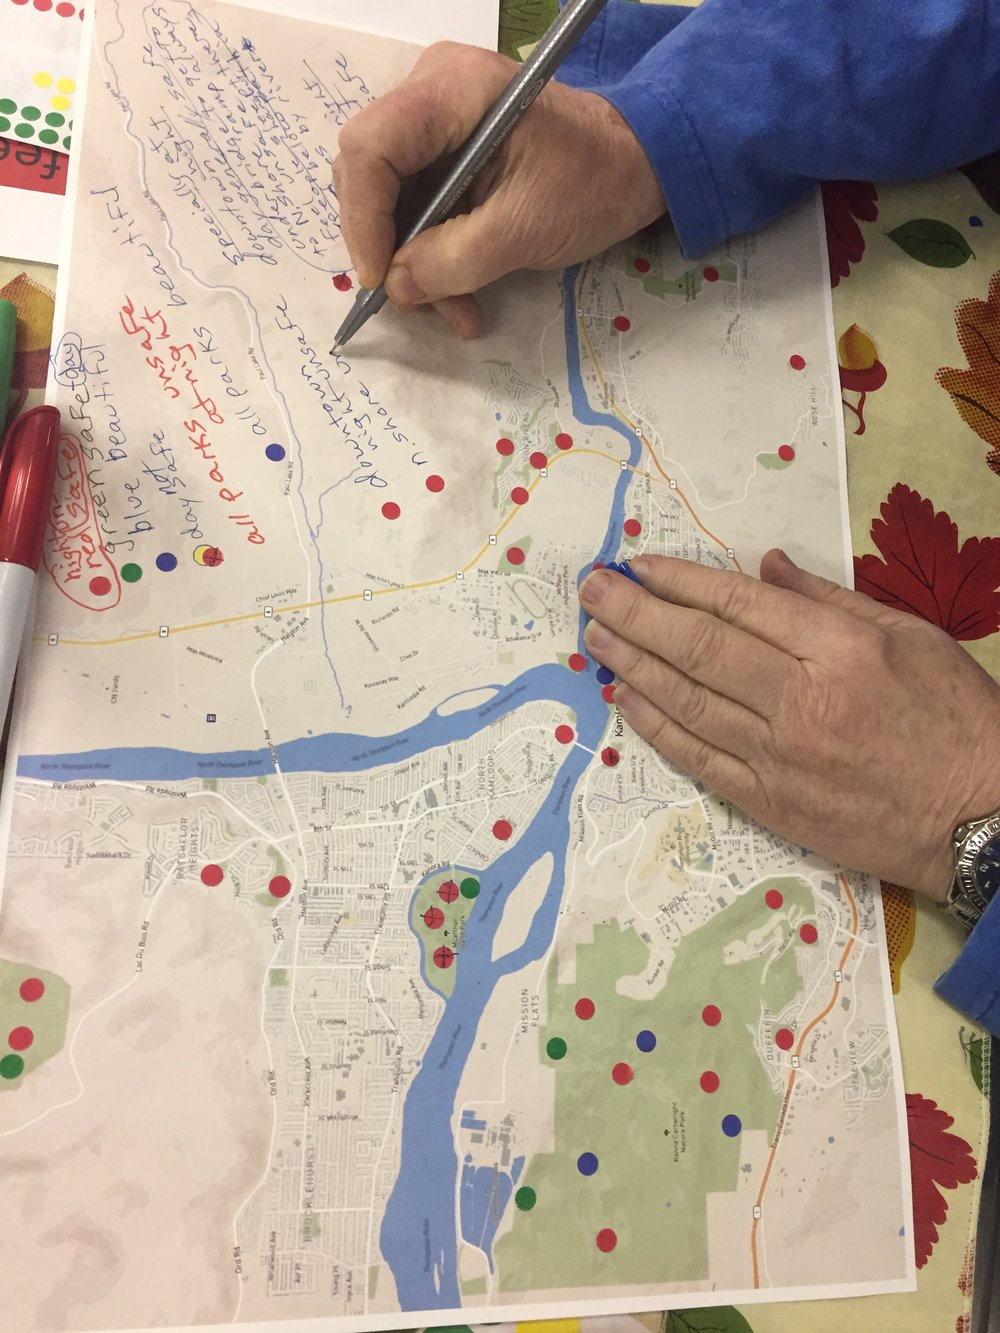 An Elizabeth Court resident creates her legend on her map.